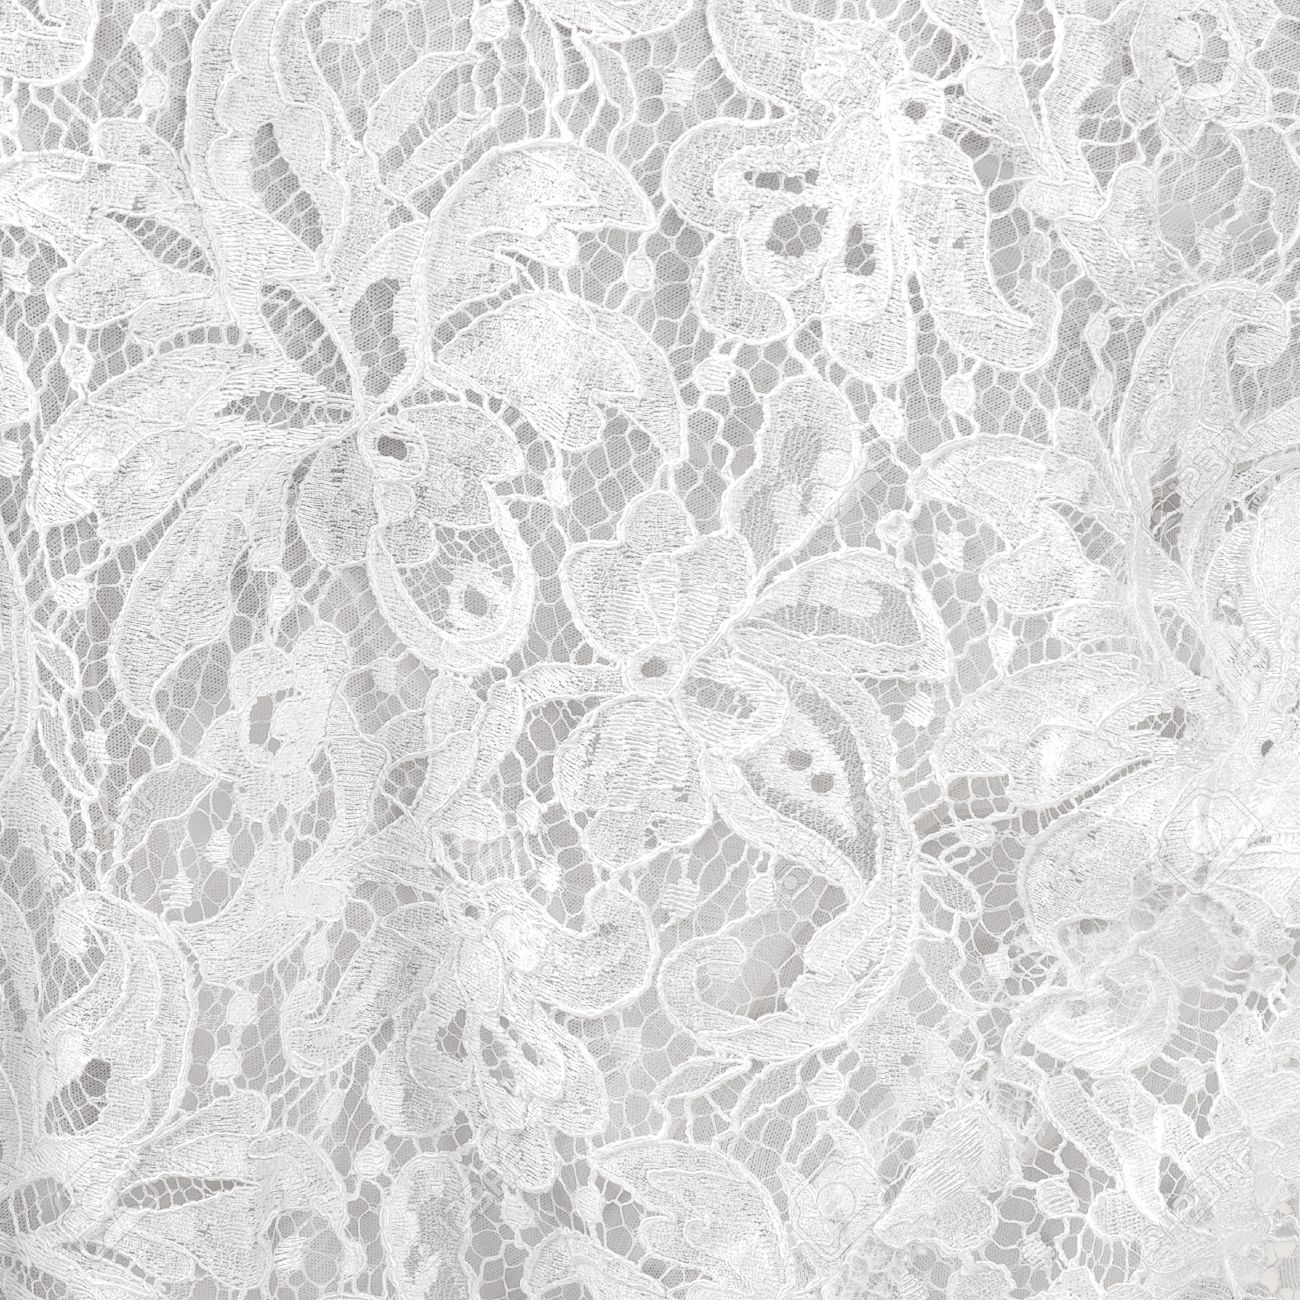 Wedding White Lace wedding white lace background stock photo picture and royalty background